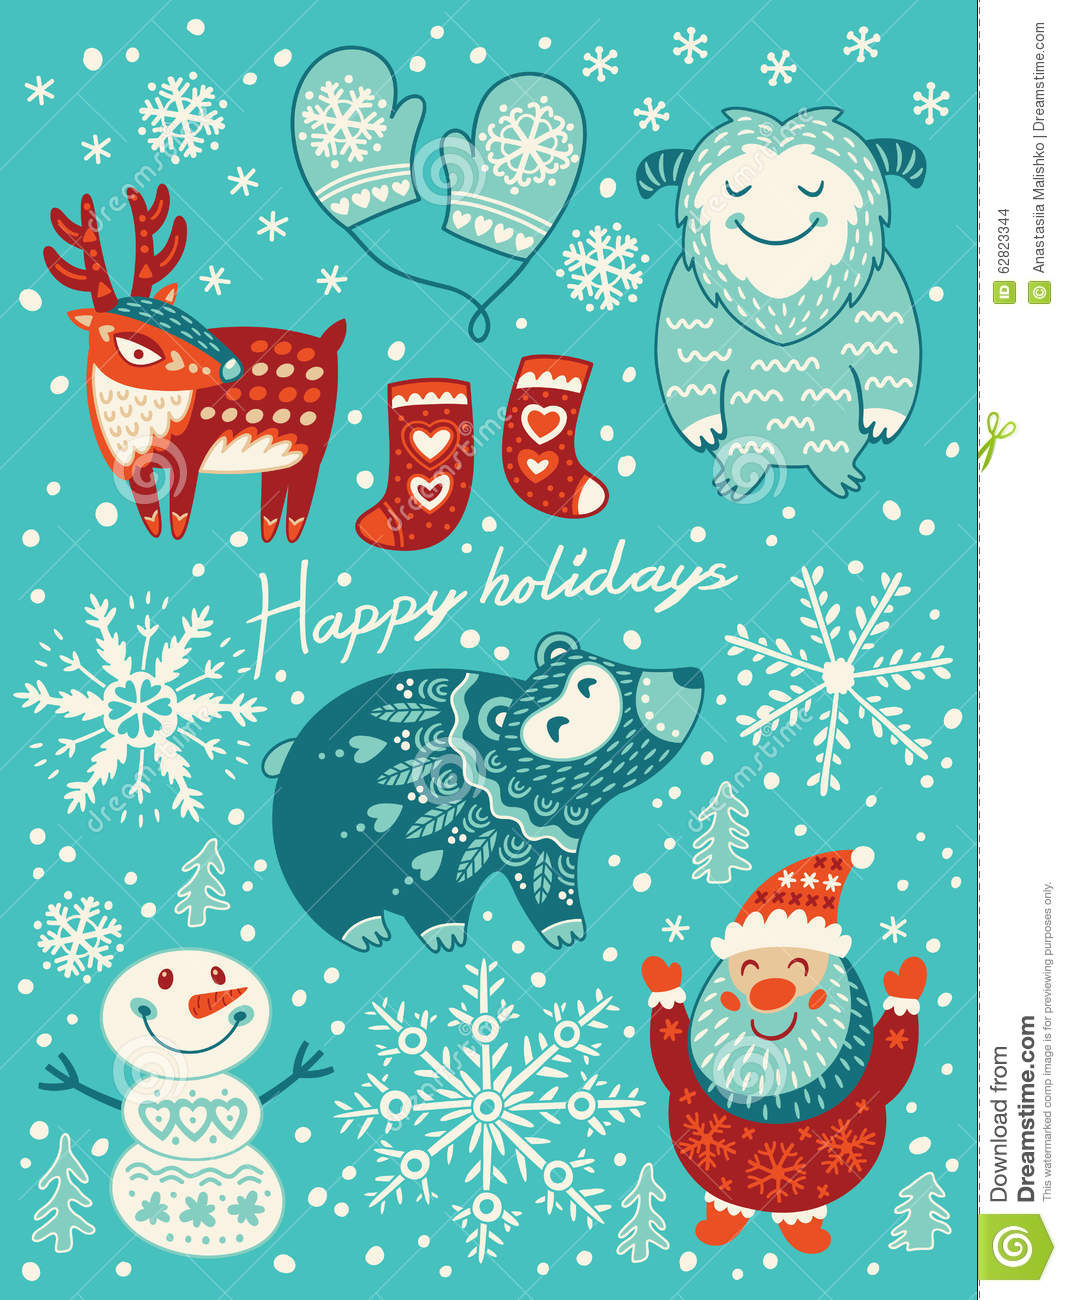 Happy holidays card christmas set with cartoon characters vector happy holidays card christmas set with cartoon characters vector illustration kristyandbryce Image collections